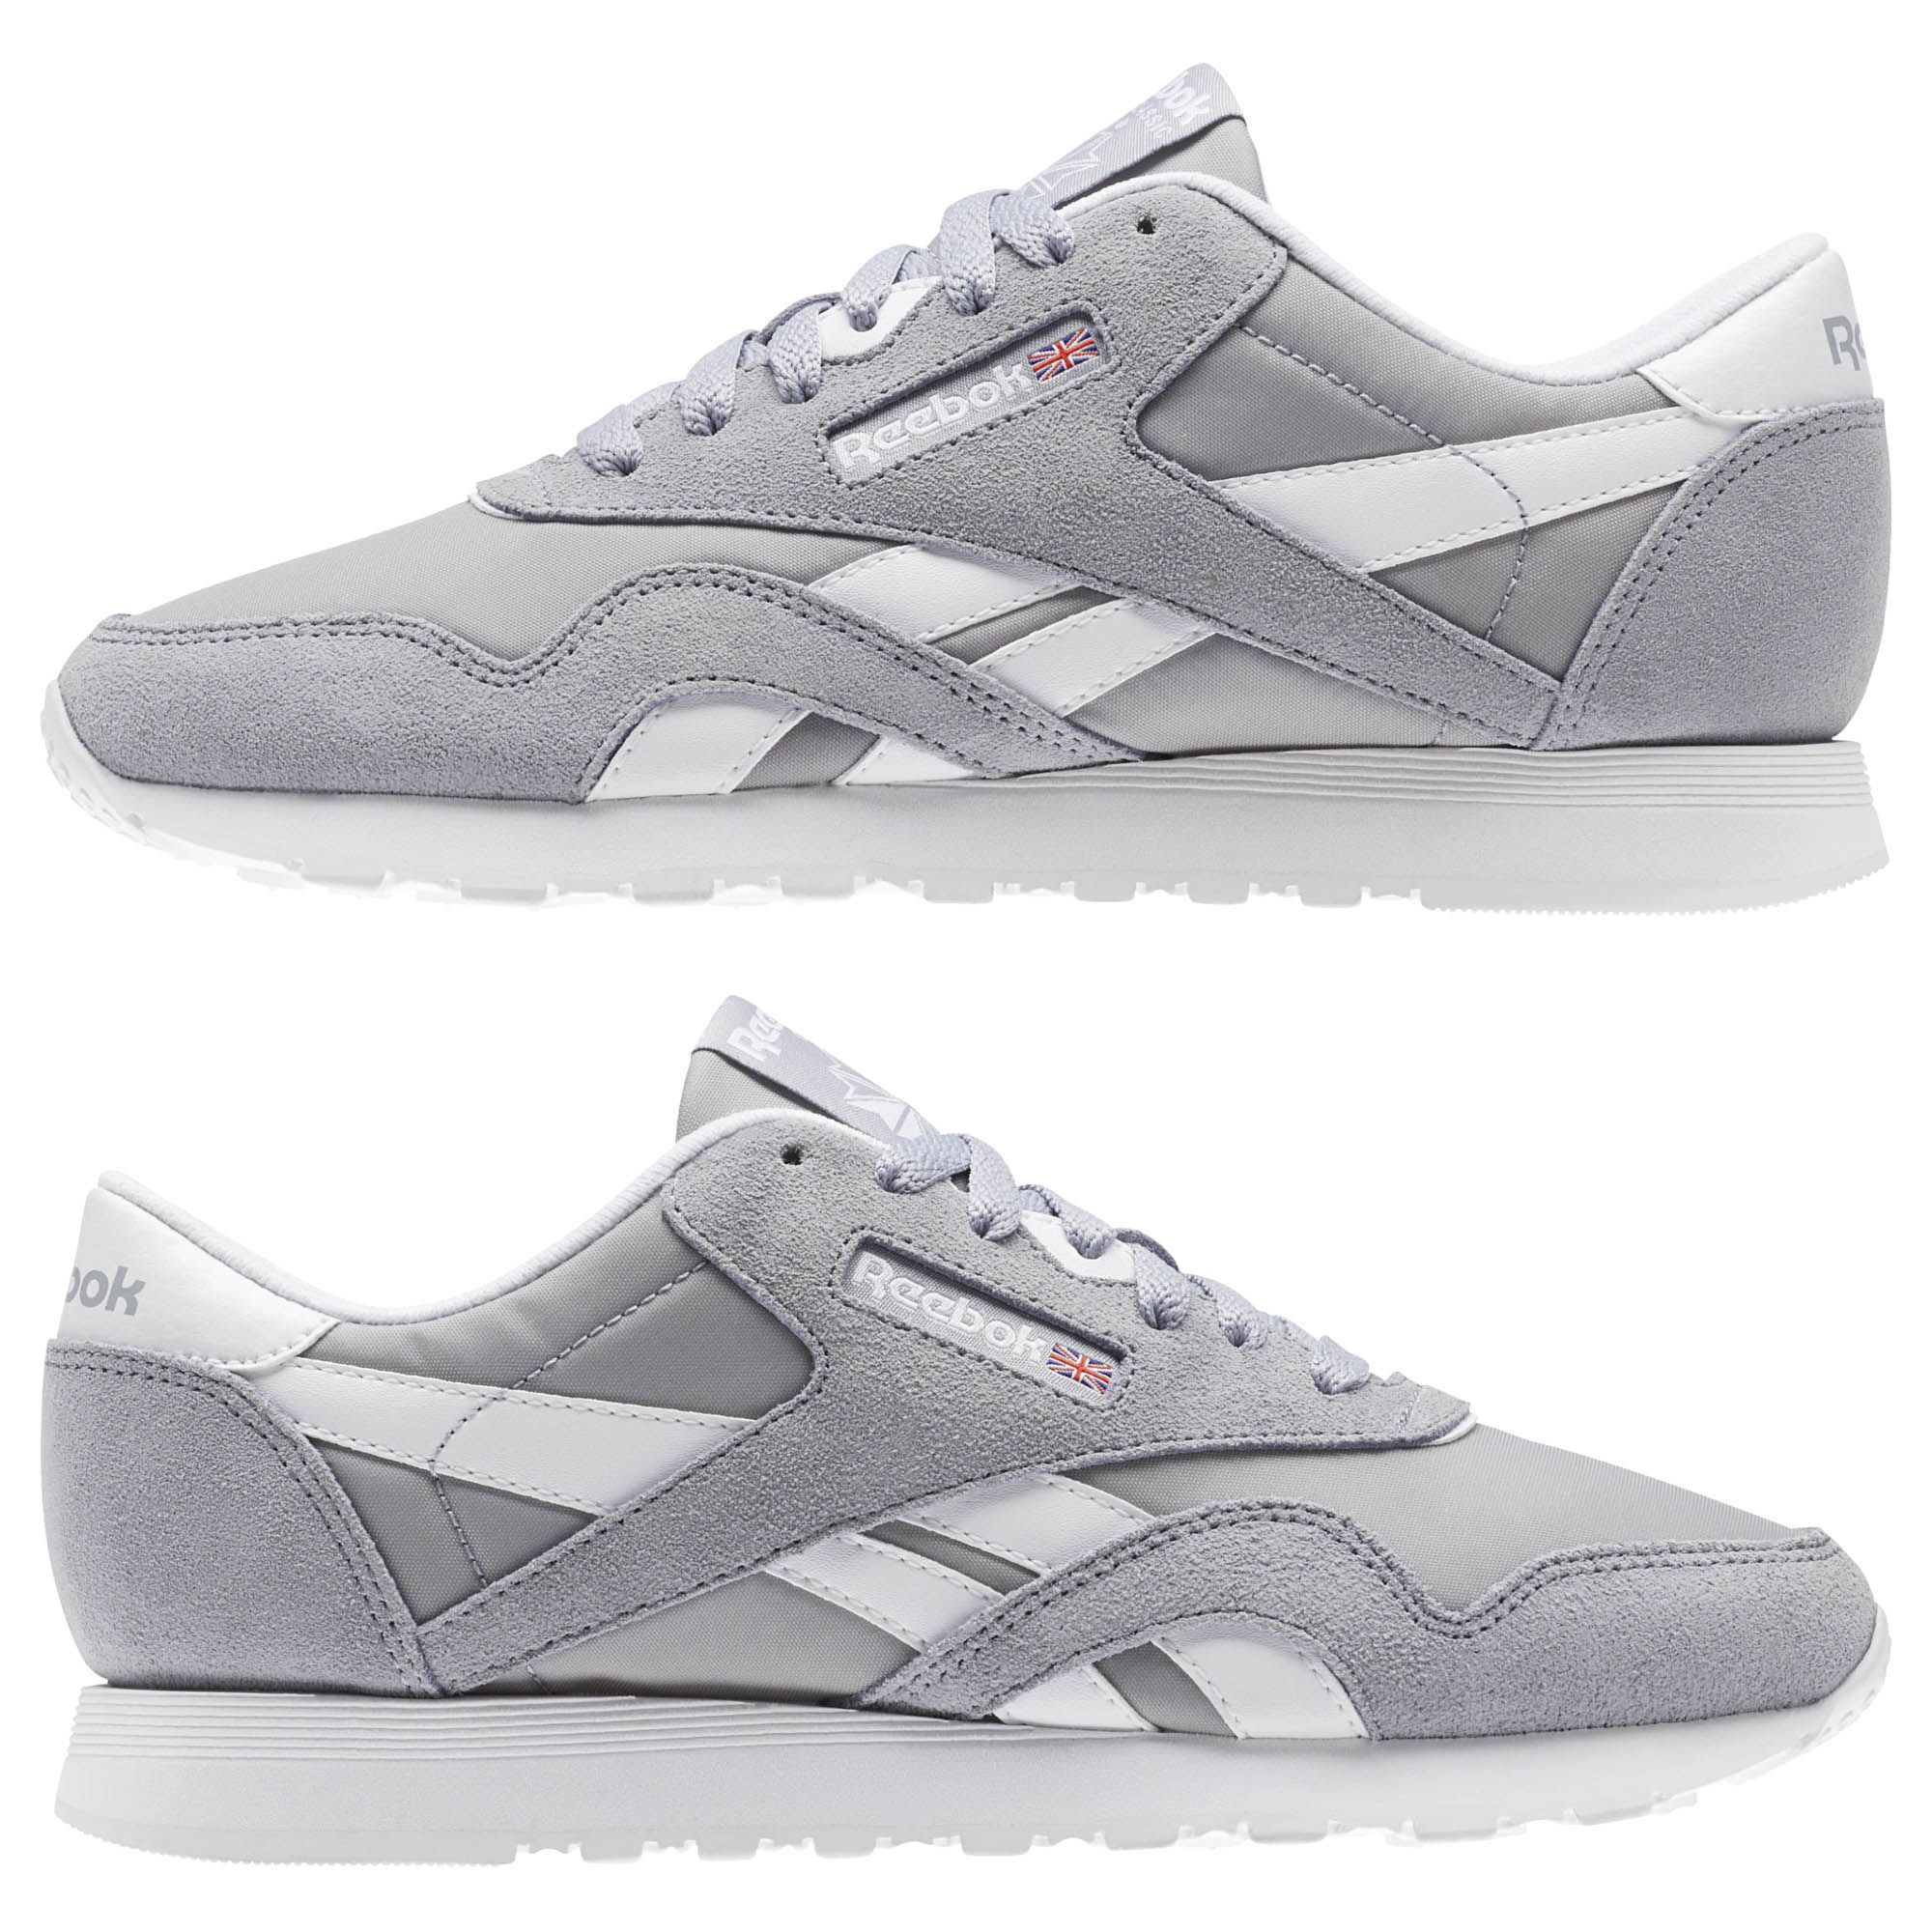 newest 59211 6d8db Pin by monika on Shoes in 2019 | Reebok, Cute outfits, Classic